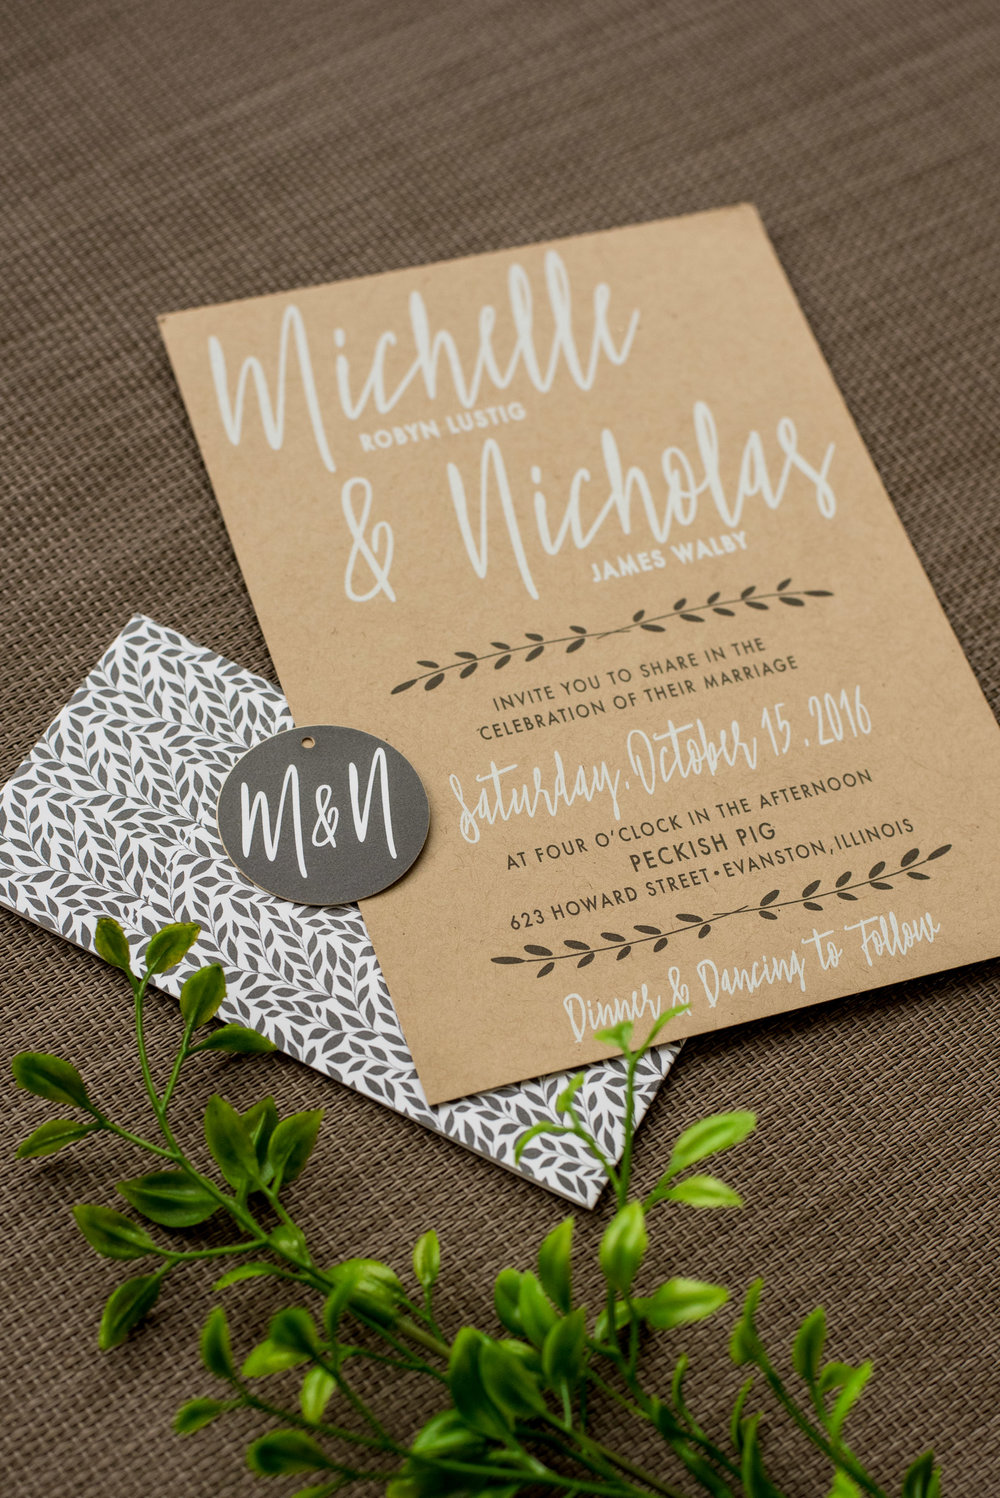 Industrial Chic Wedding Invitation by Ashley Parker Creative on Kraft Paper with Charcoal and Fern Accents, a Monogram Tag, and Printed Bellyband. Main Invite, Bellyband and Tag